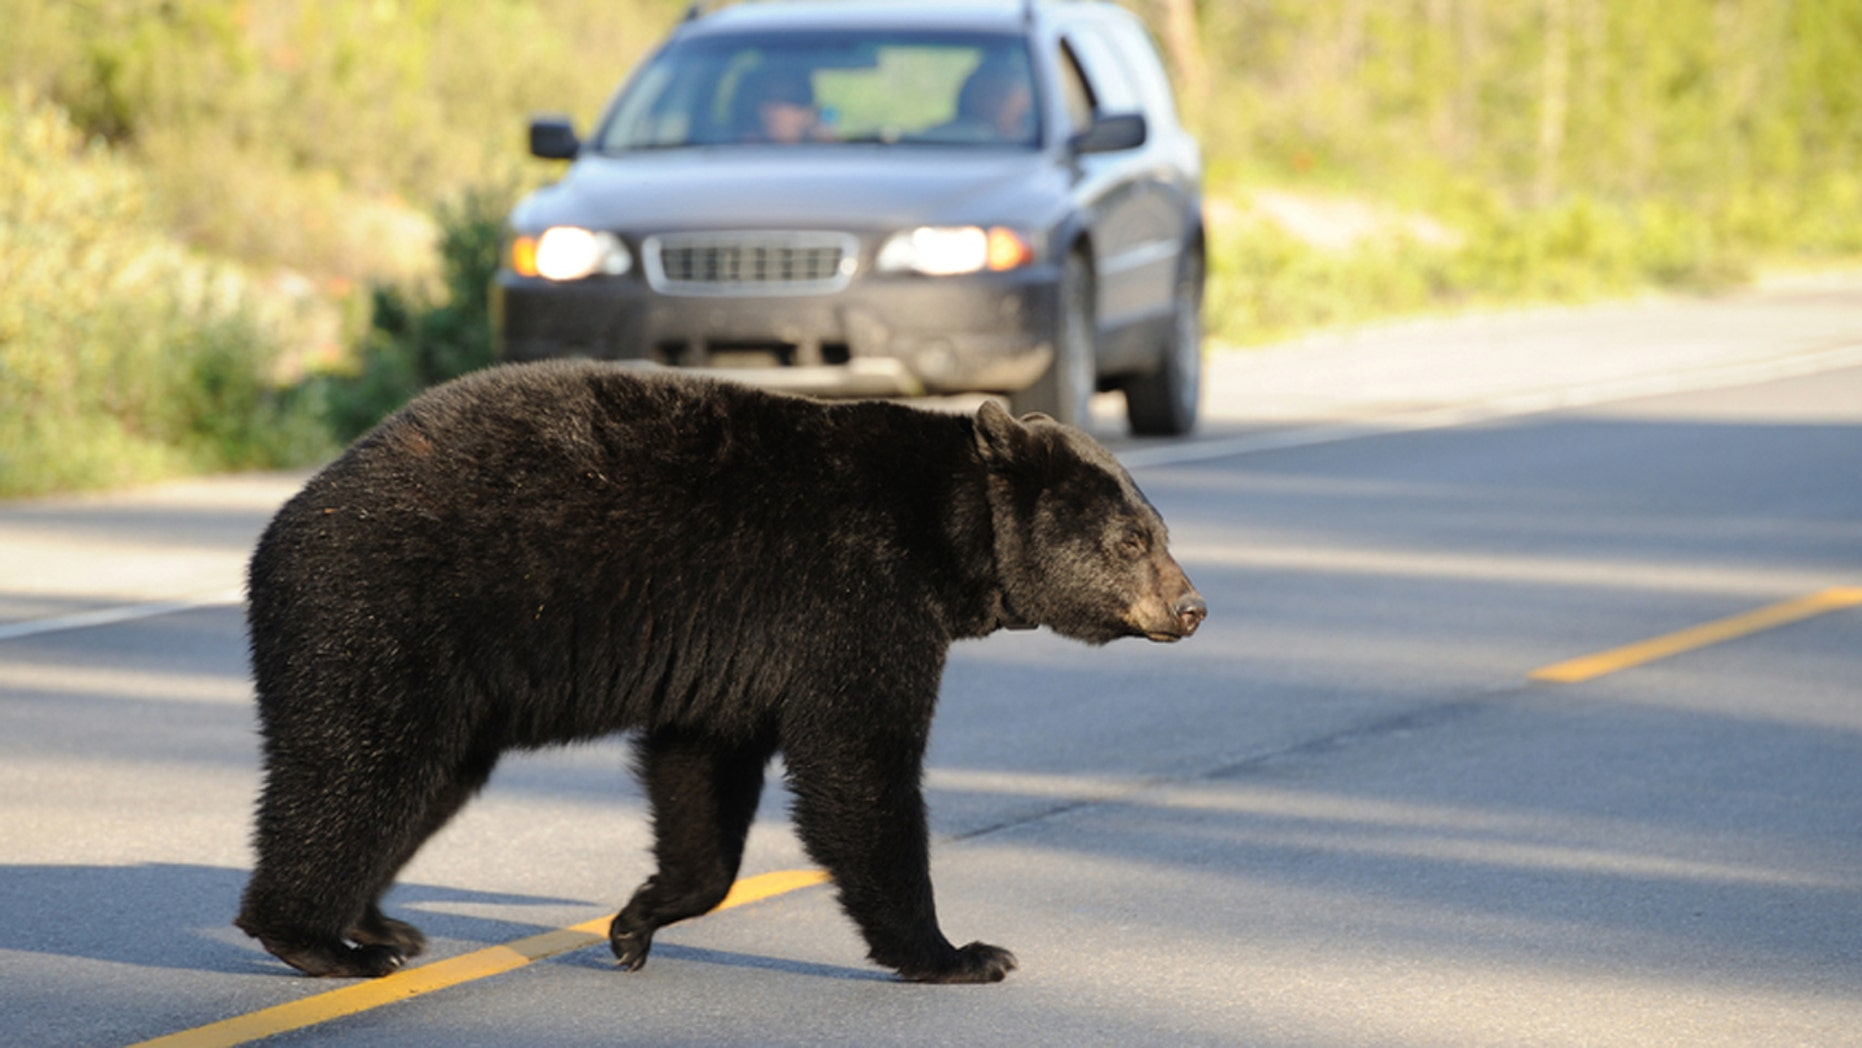 The bears have reportedly become conditioned to human food.